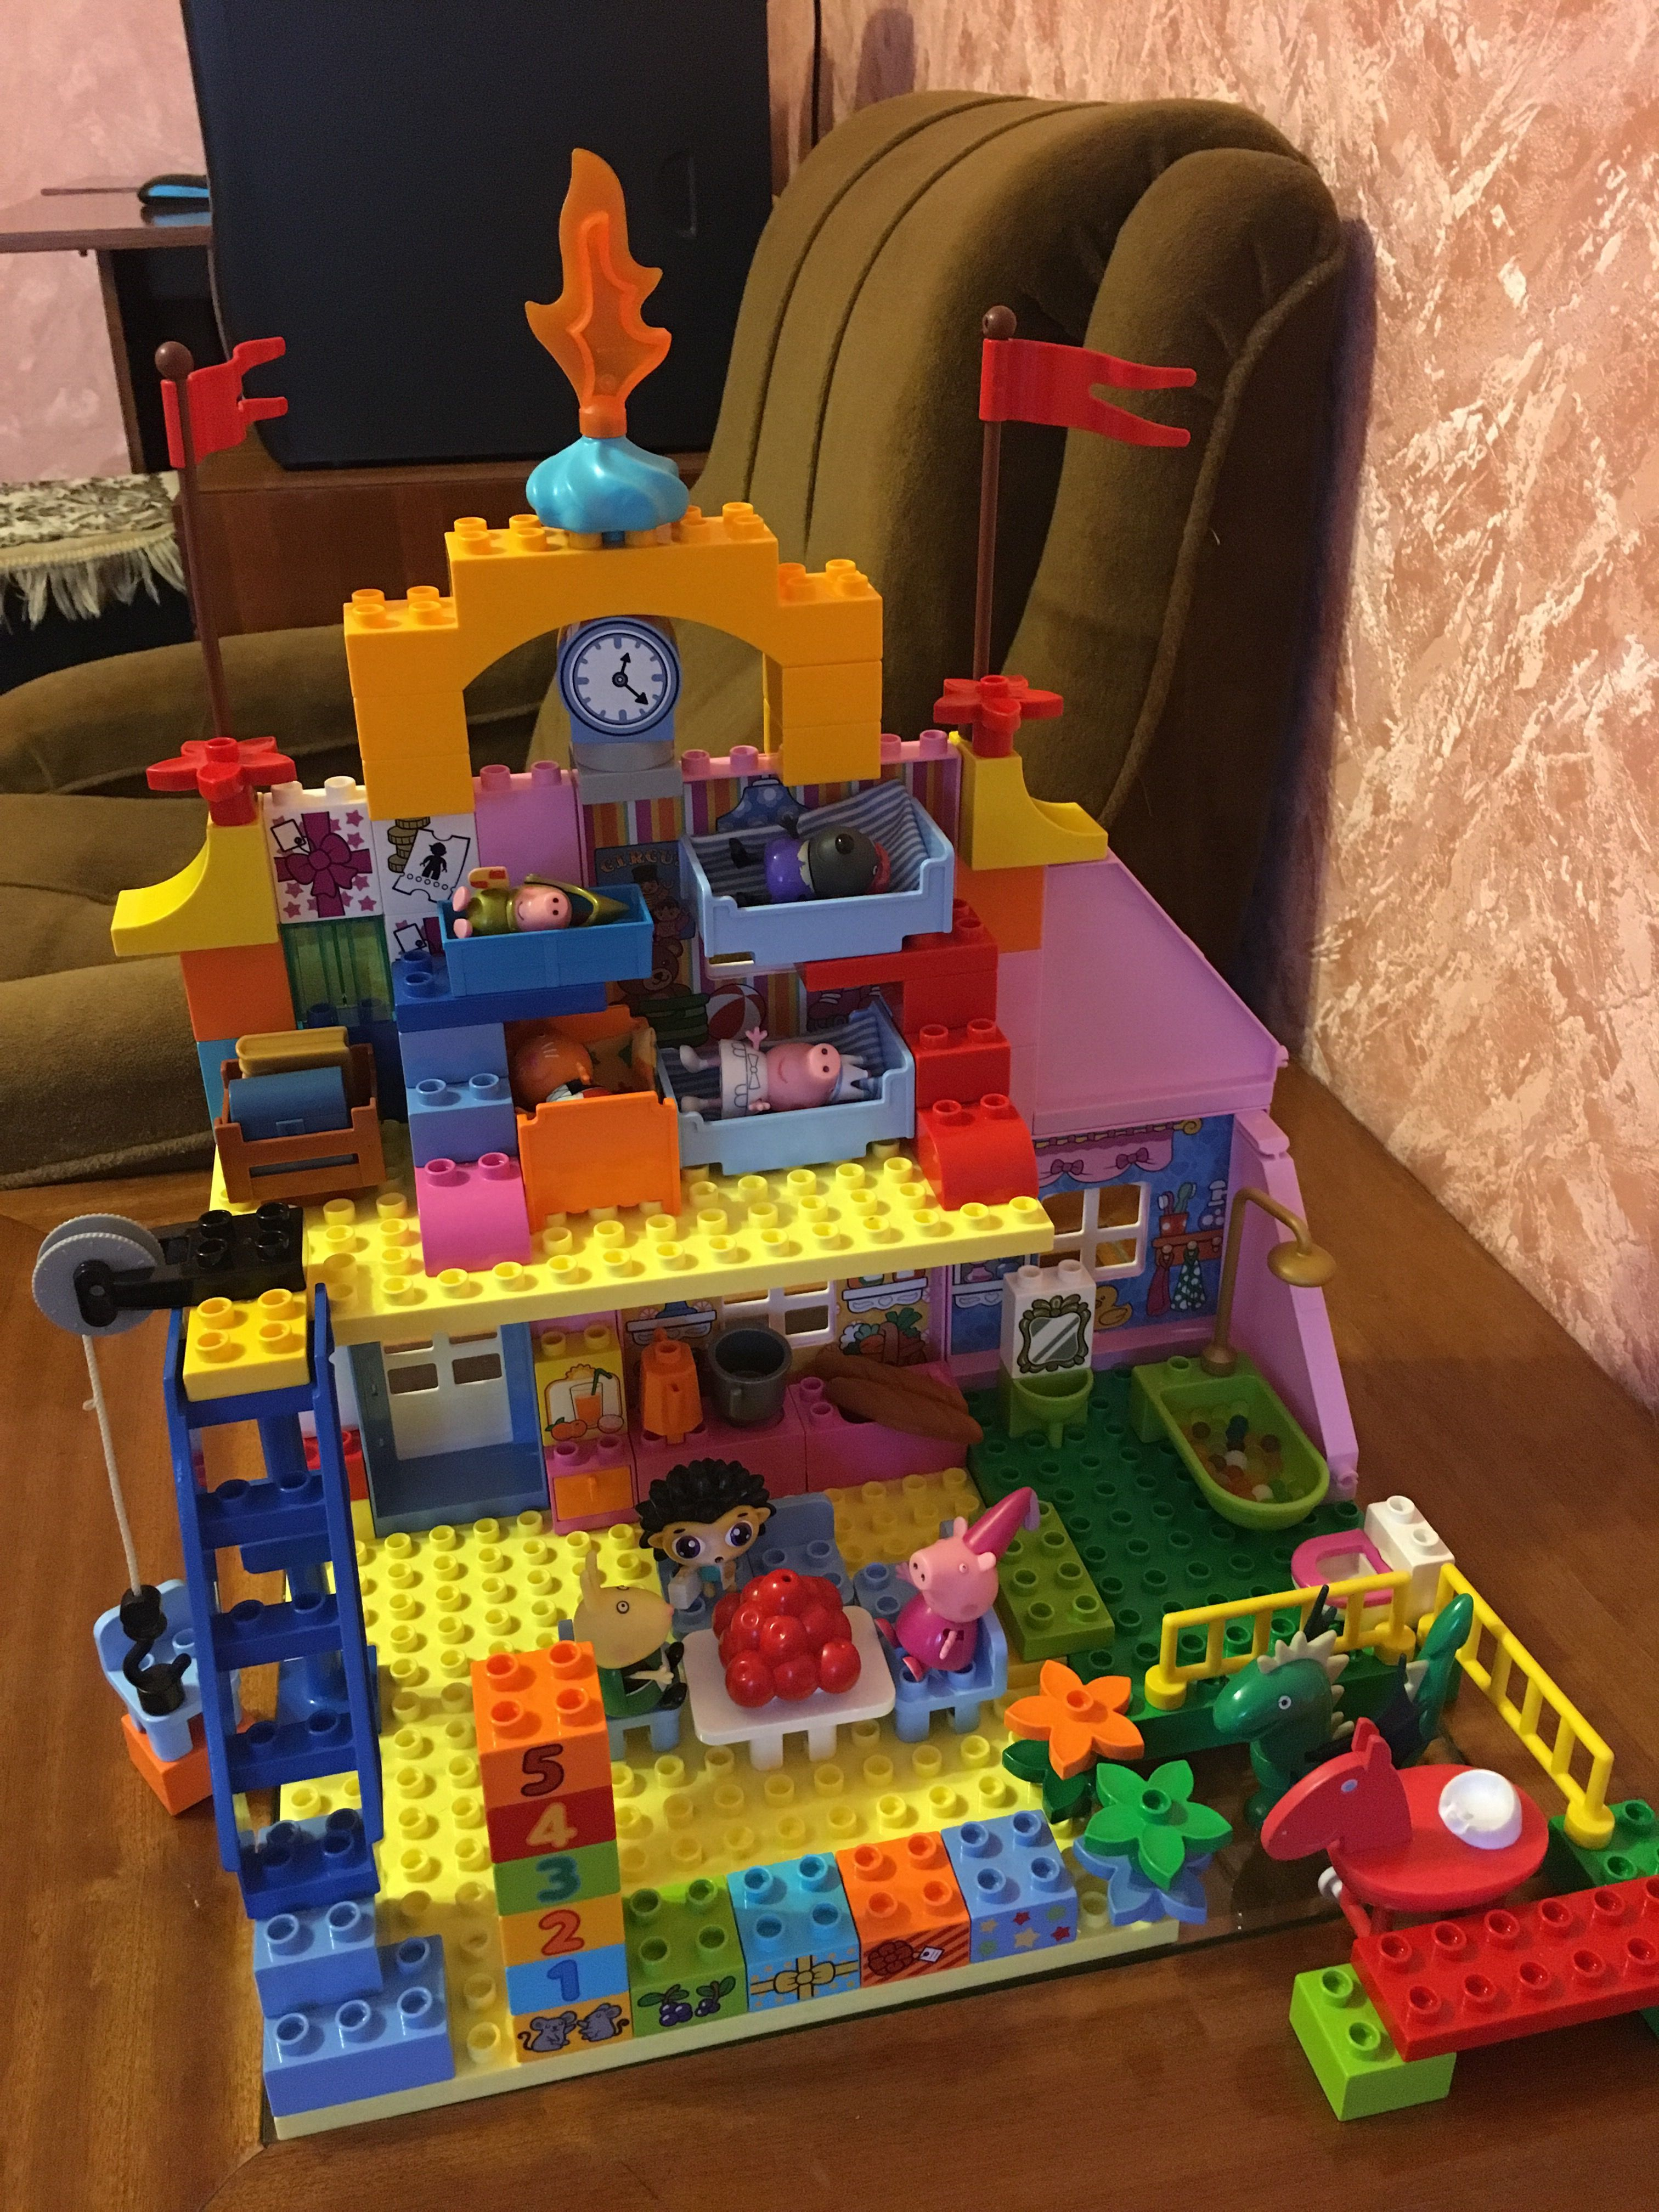 Amazing castle lego duplo for peppa pig and her friends - Lego duplo ideen ...